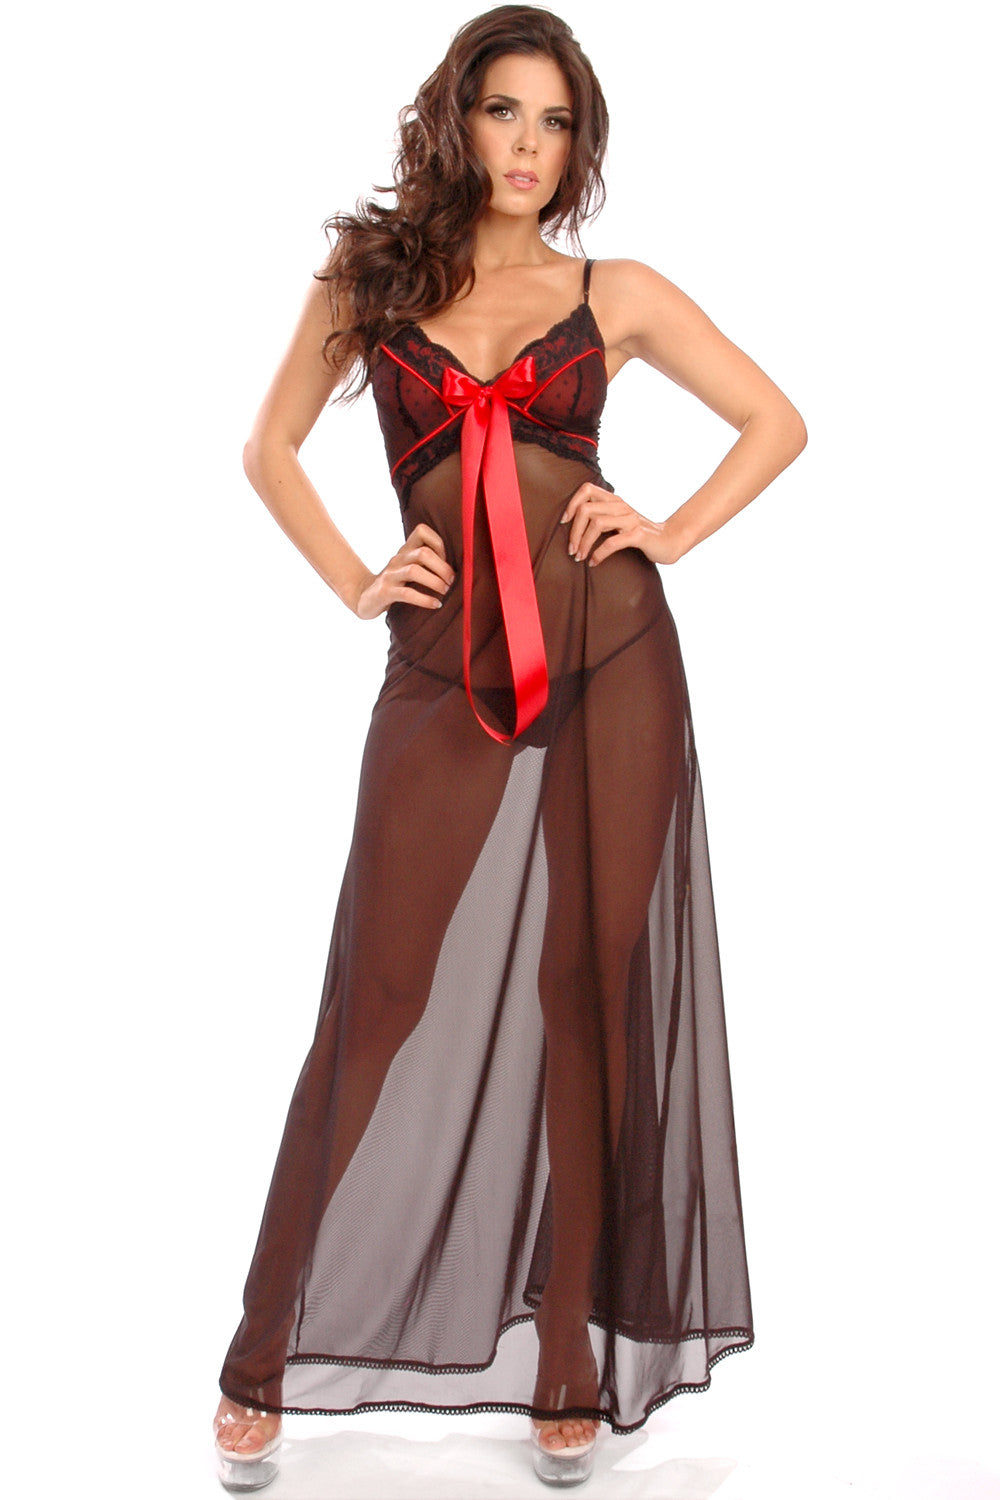 Fleurette Night Gown Red